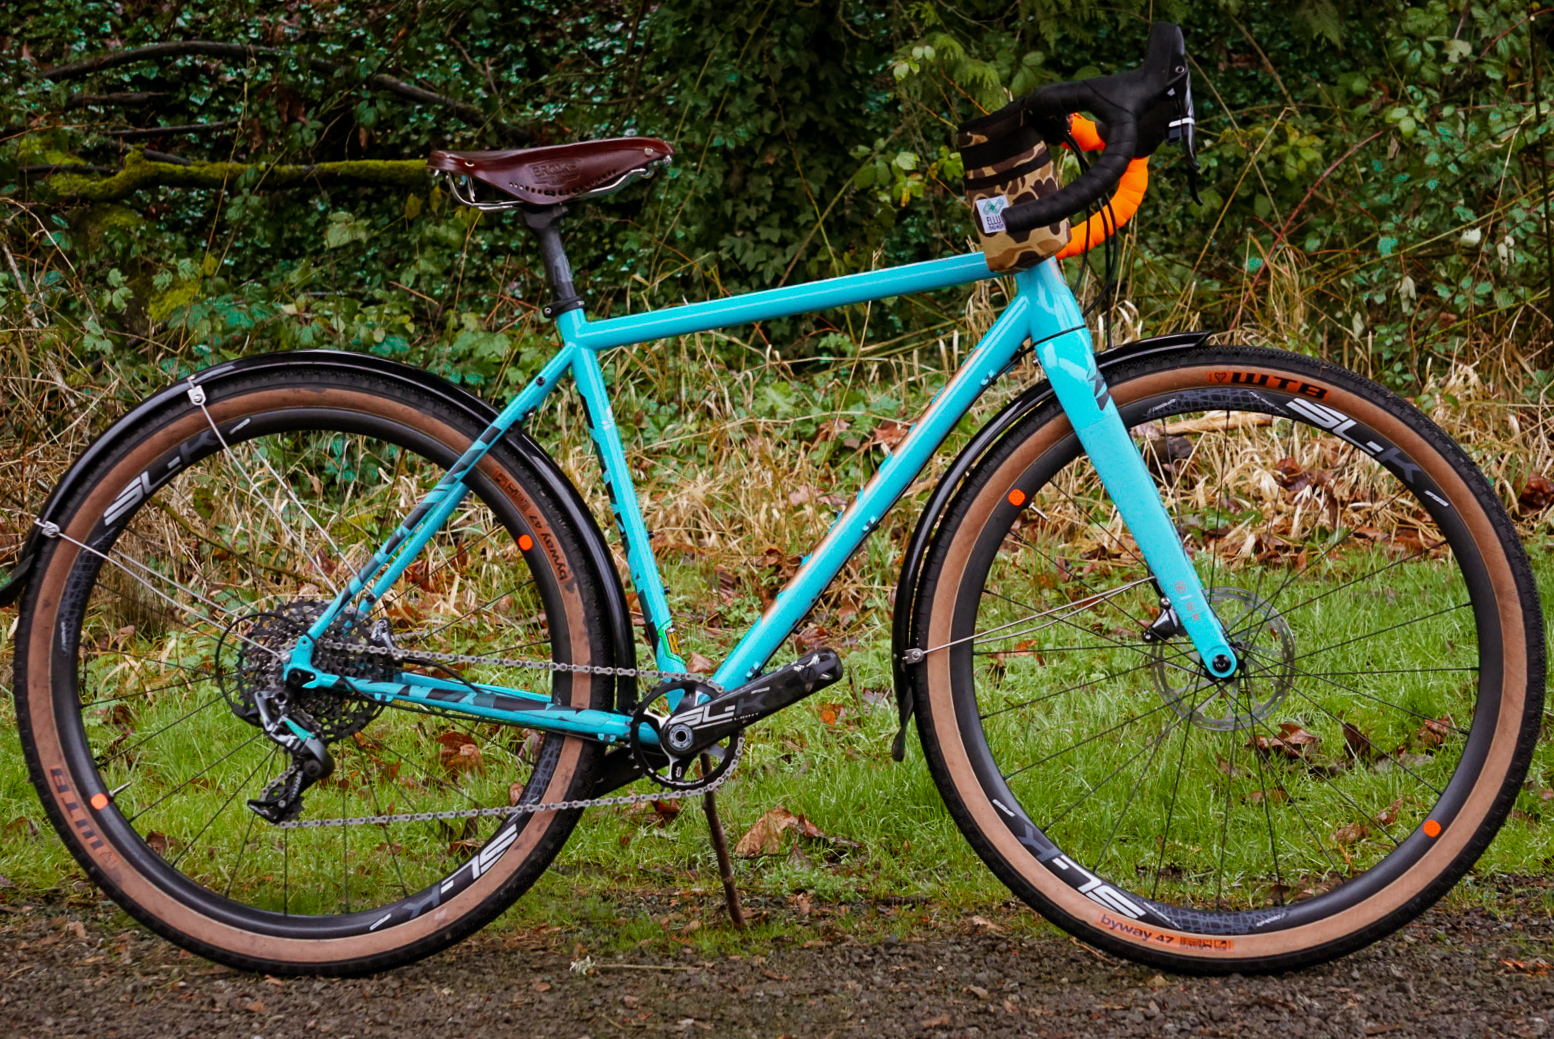 Kona Dream Builds: The Bearded Bike Packer's Fully Loaded Rove LTD